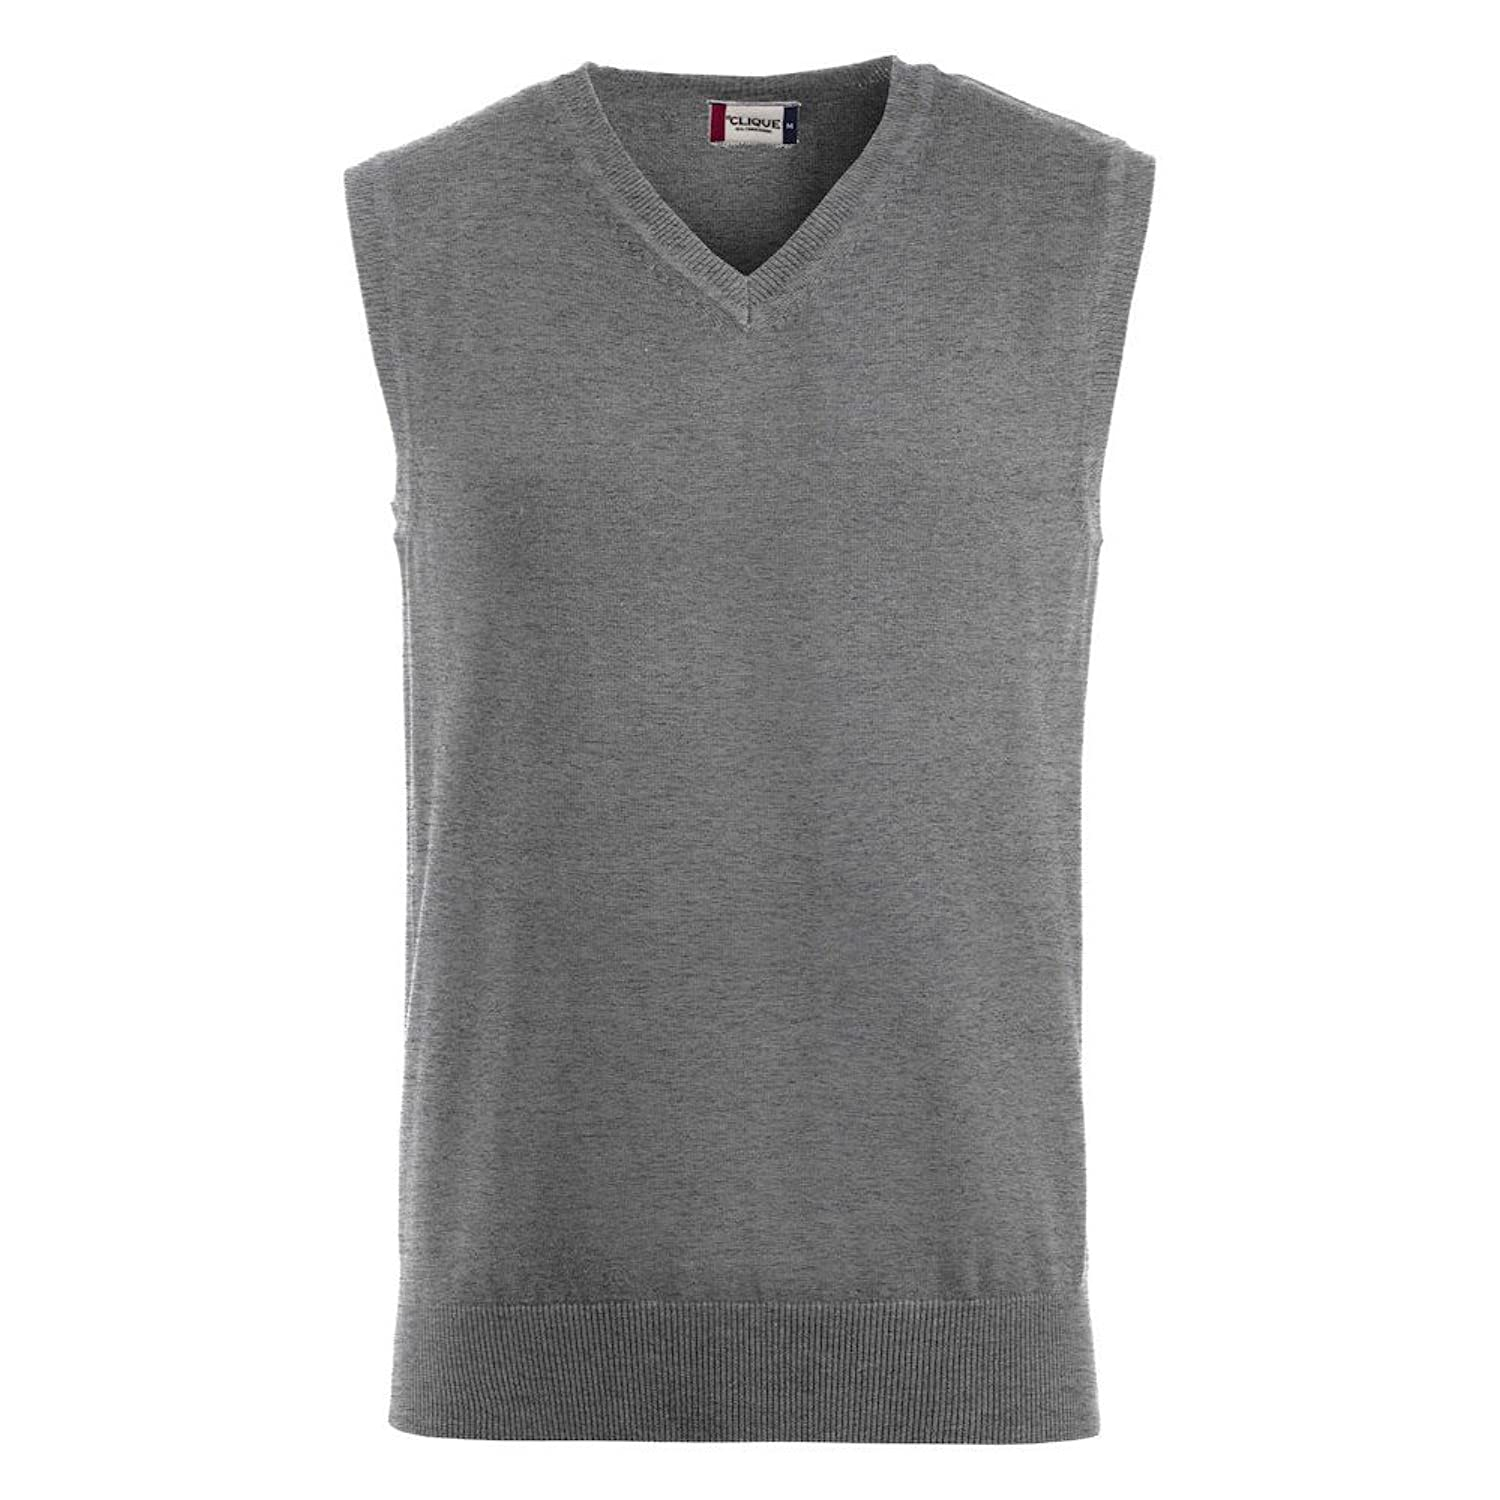 Swedish Brands Stylish Mens 12 Gauge Soft Touch Cotton V Neck Slipover Tank Top Sleeveless Jumper, 3 Colour Options, Sizes XS-2XL